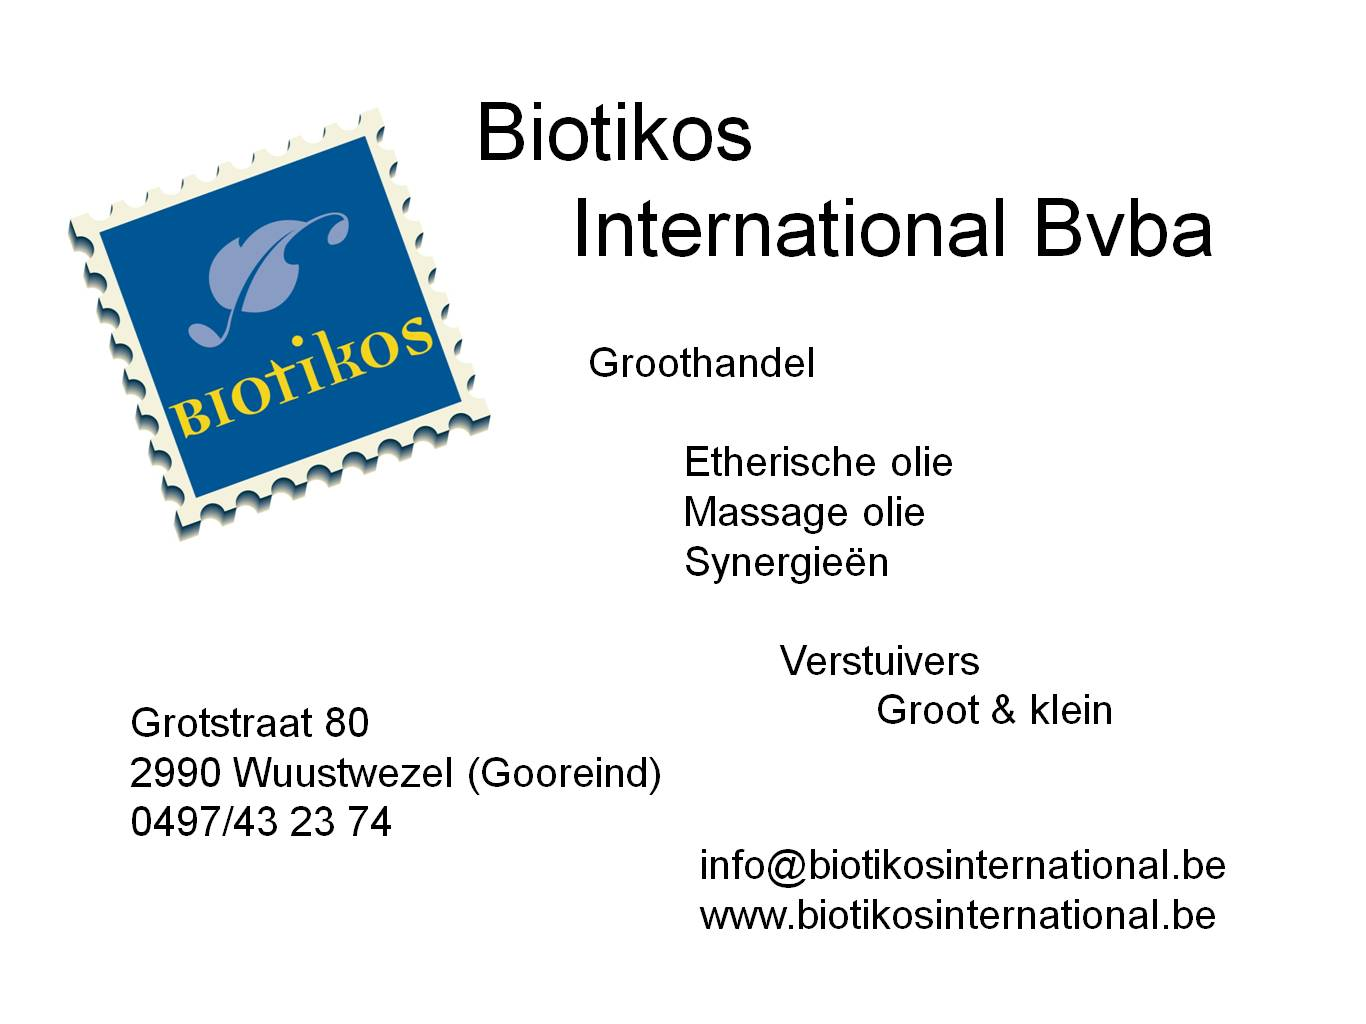 Biotikos International Bvba